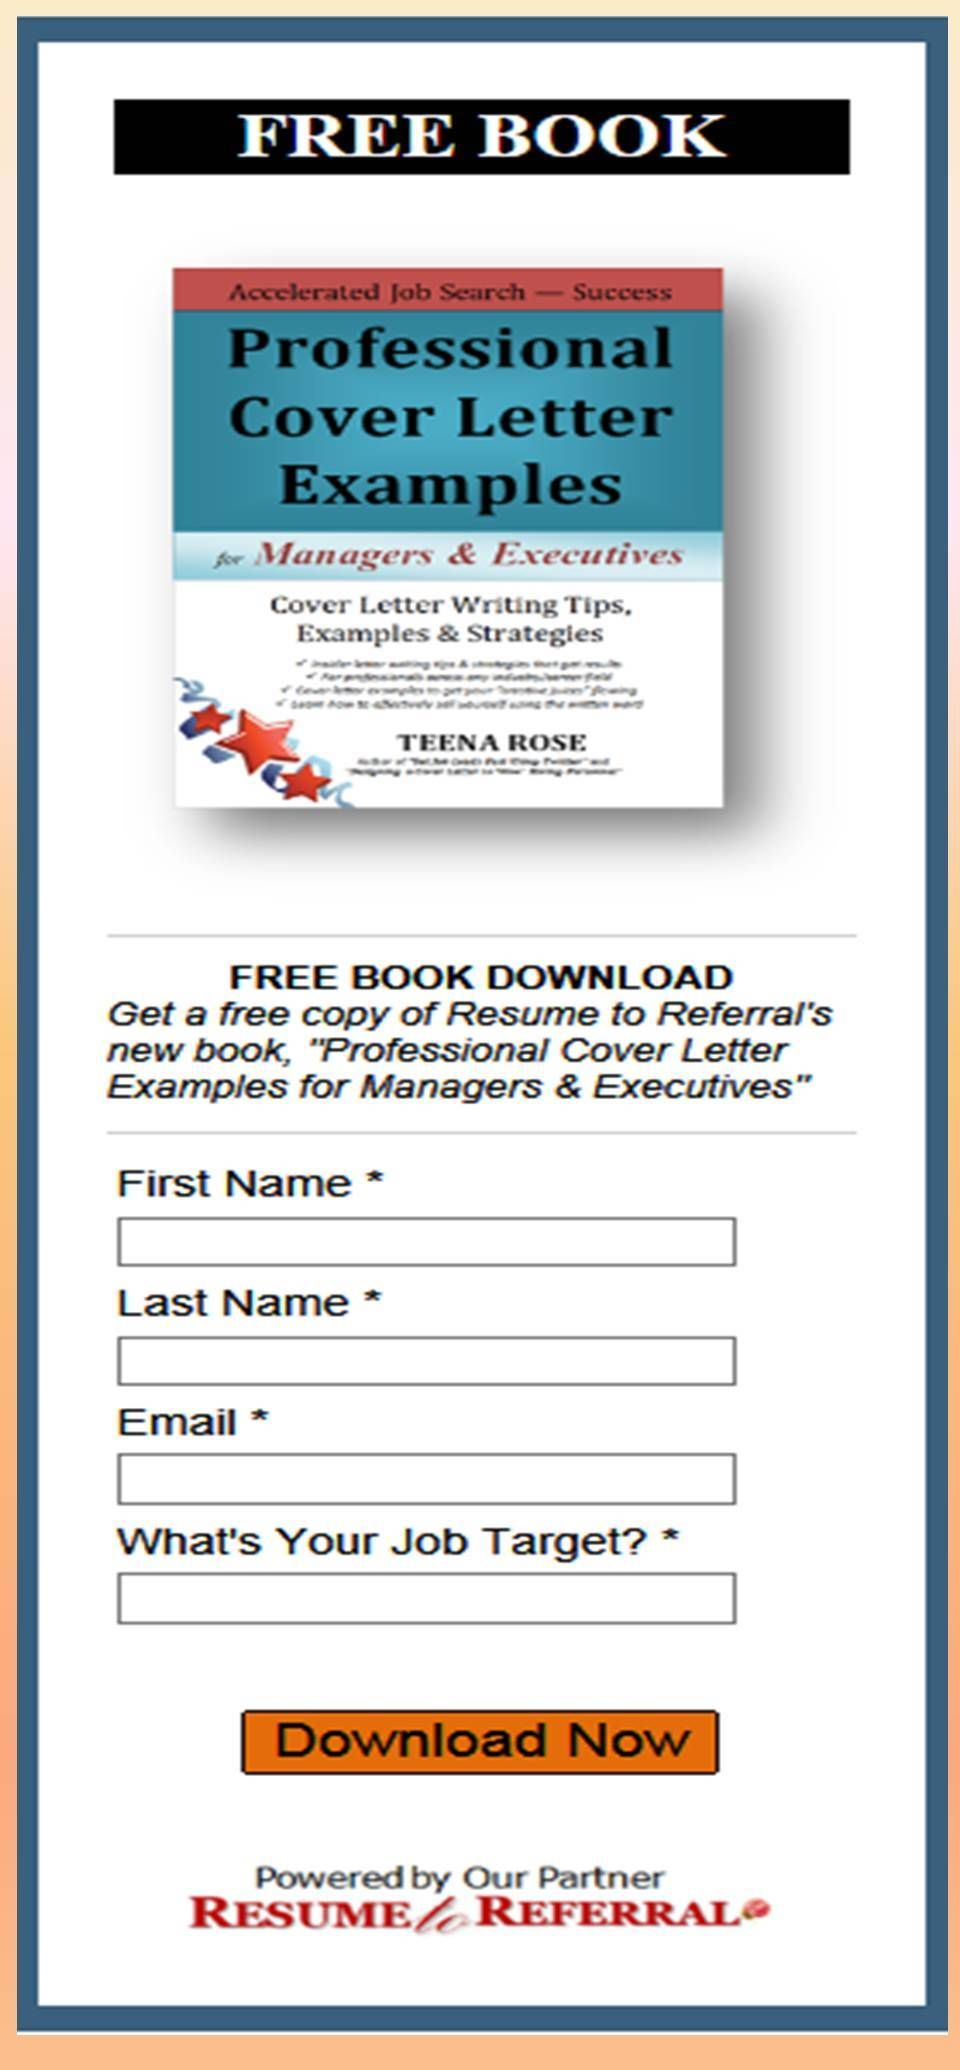 Cover Letter Examples Free Book With Cover Letters Download